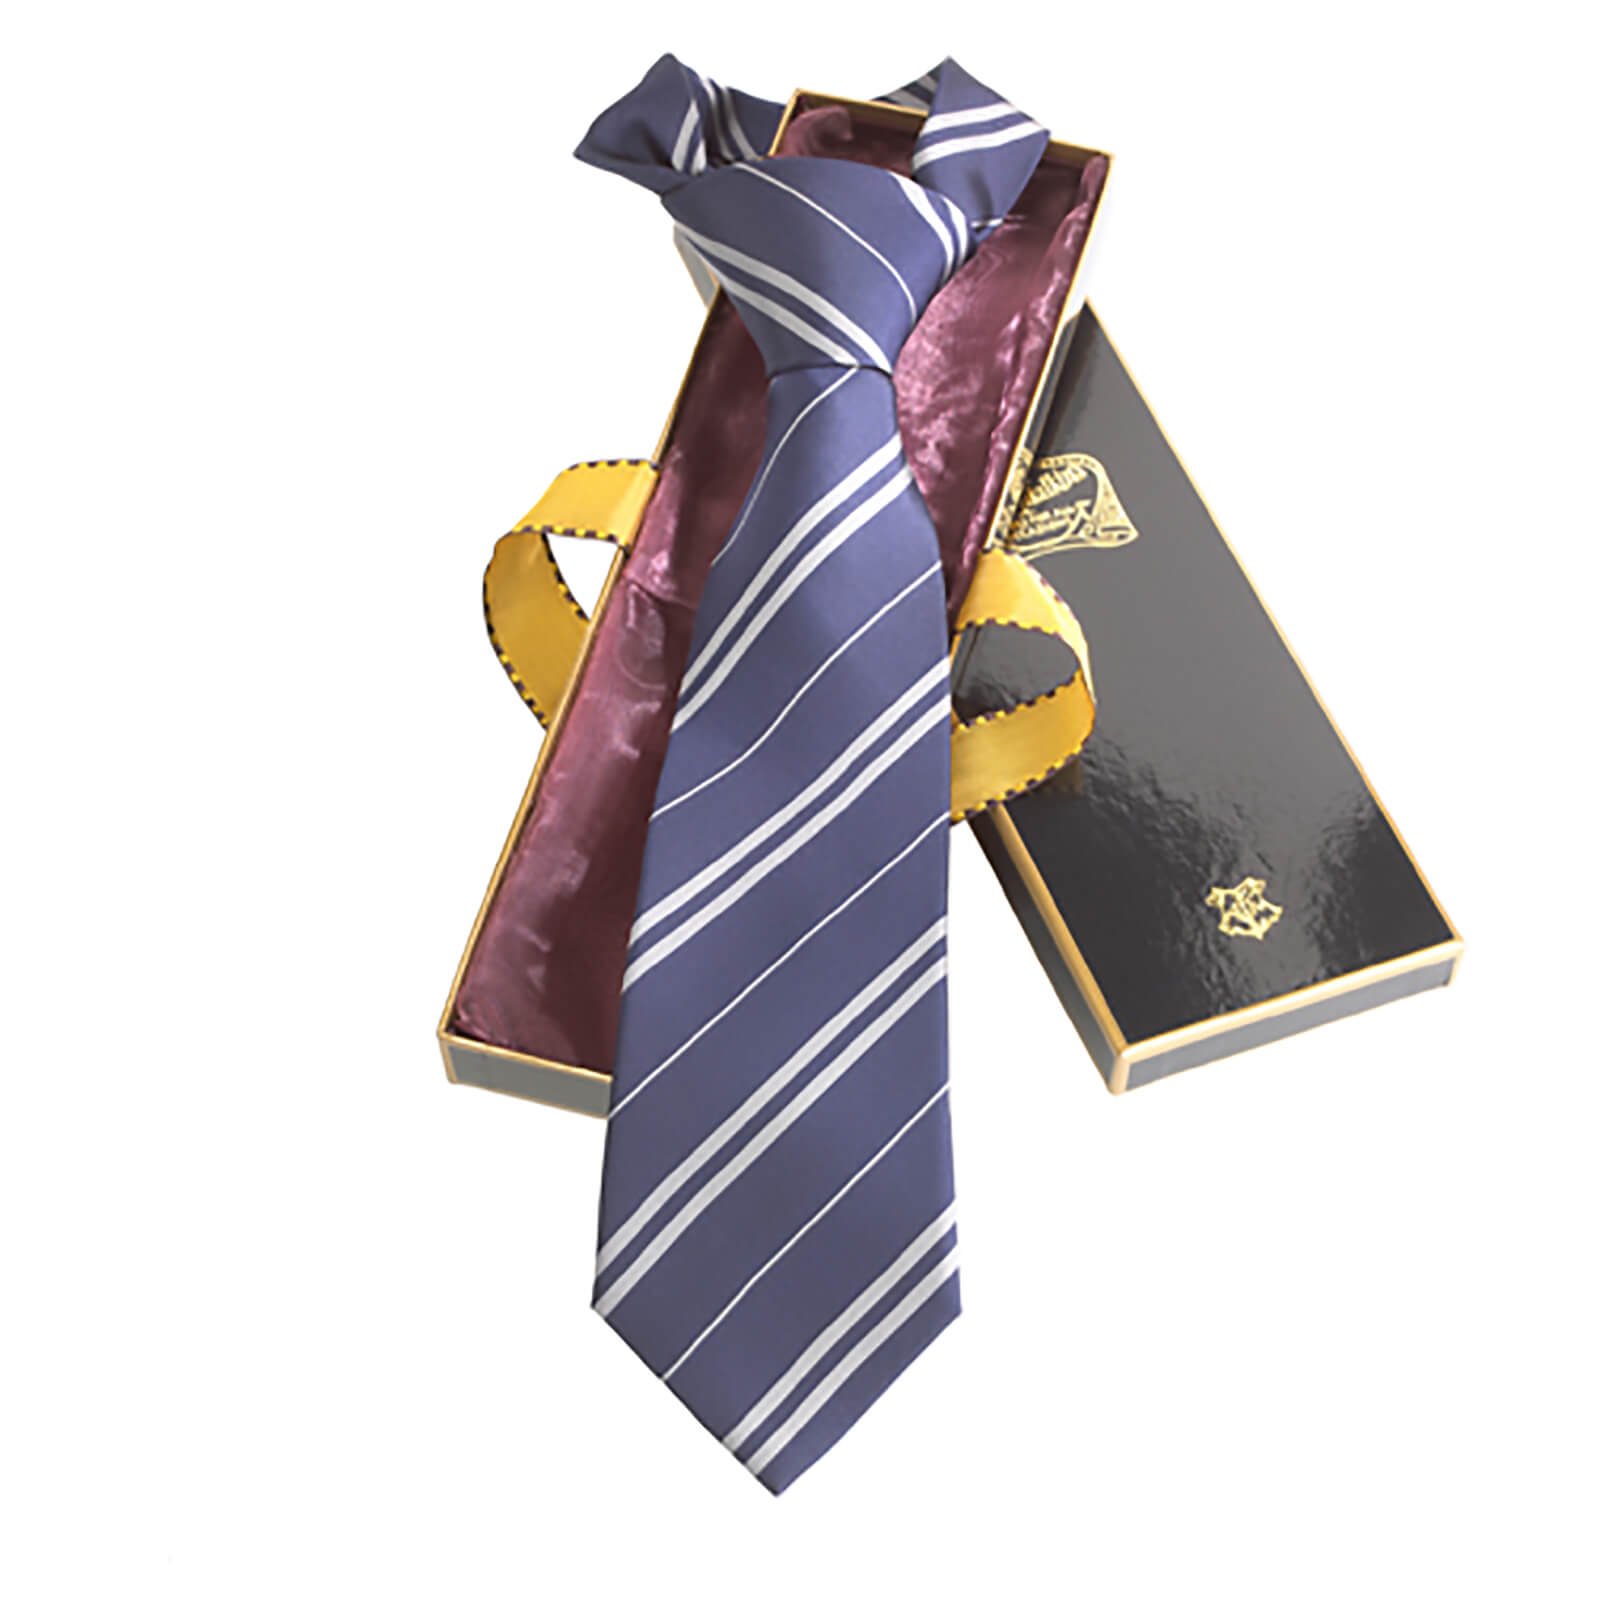 Harry Potter 100% Silk Ravenclaw Necktie in Madam Malkin